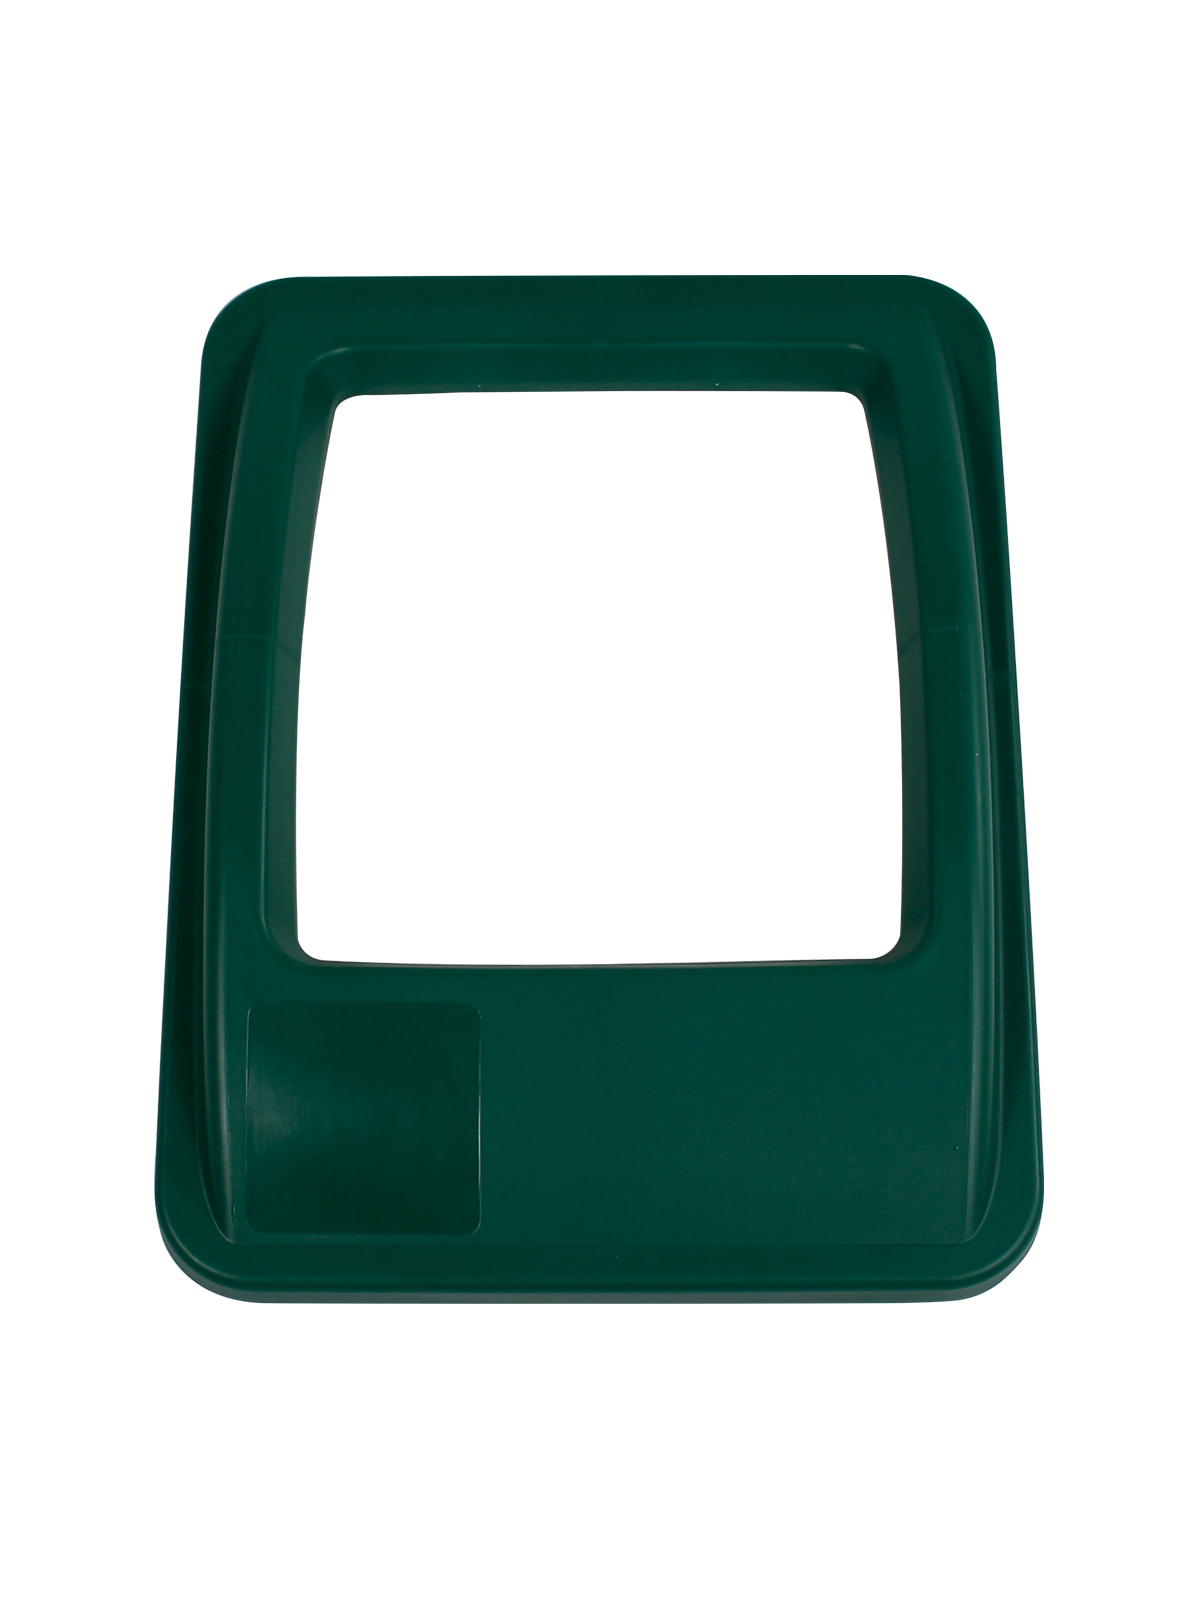 WASTE WATCHER XL - Lid - Full - Dark Green